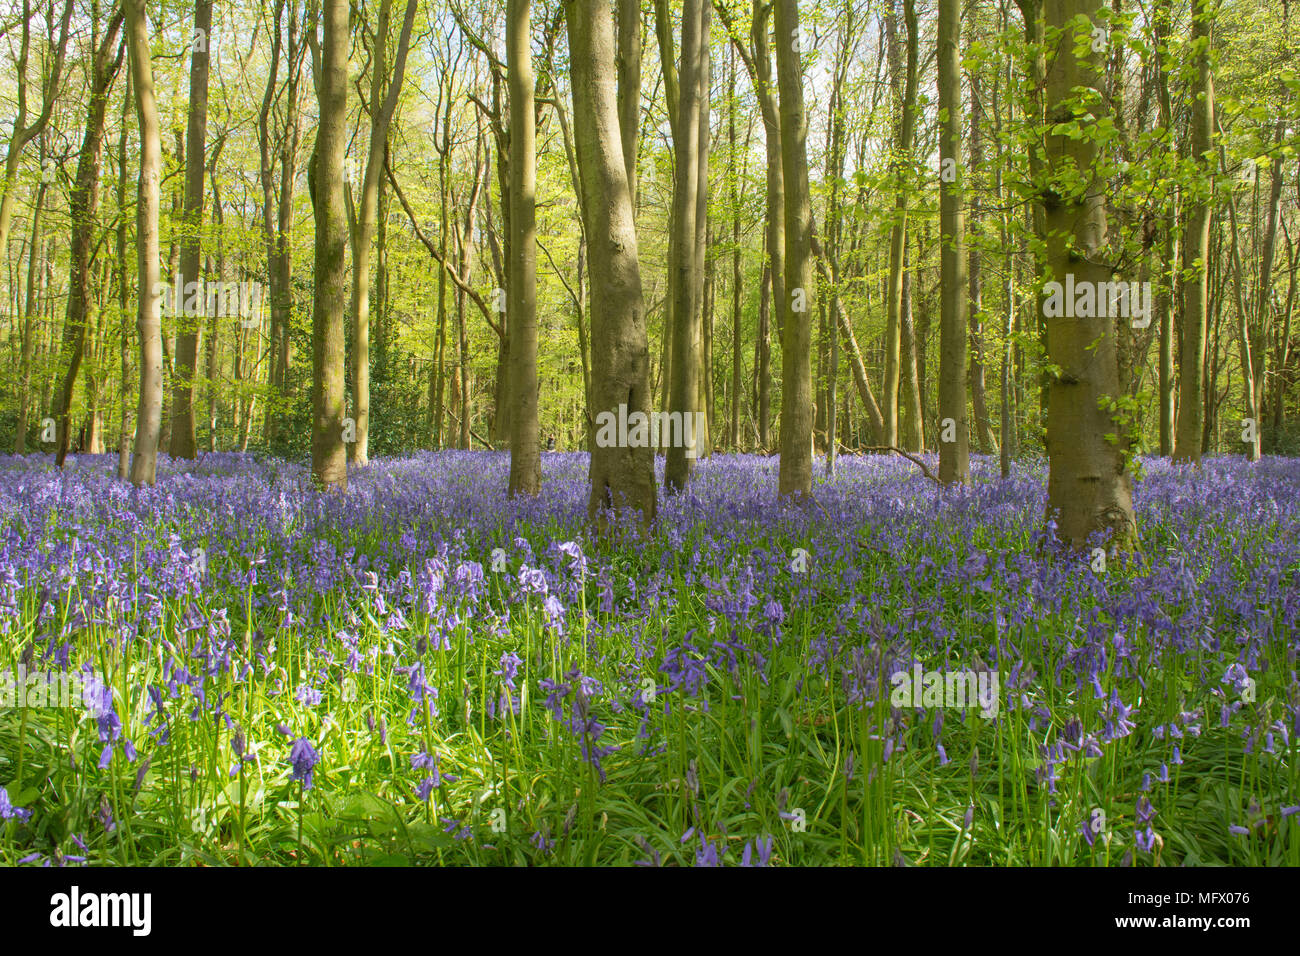 bluebell-woods-landscape-near-hinton-ampner-hampshire-uk-spring-in-the-english-countryside-MFX076.jpg